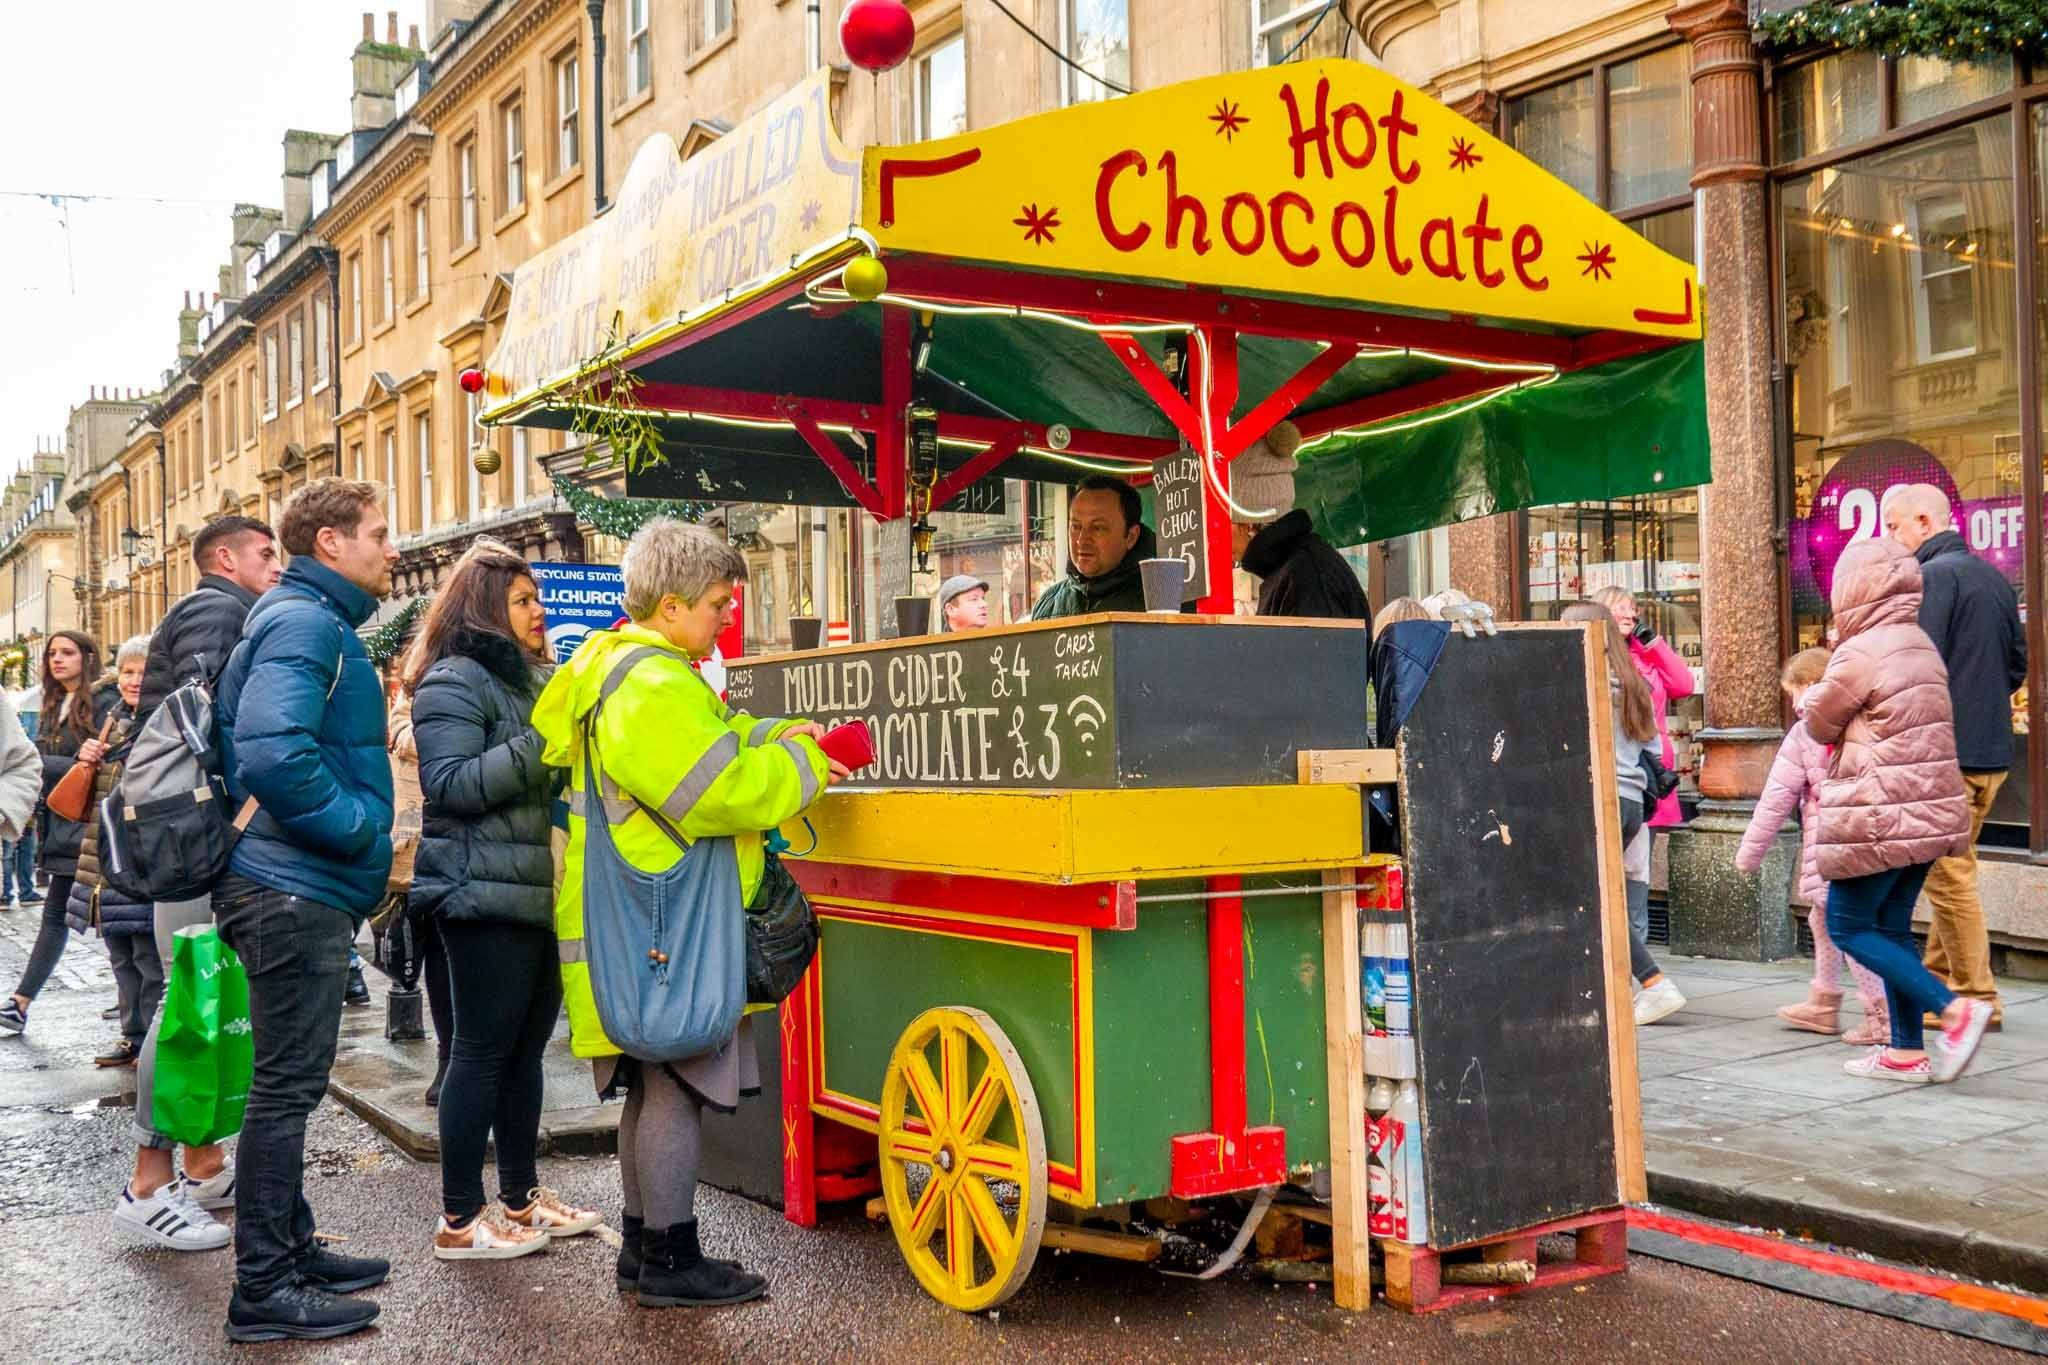 People standing at yellow and green hot chocolate cart in the street in Bath, England